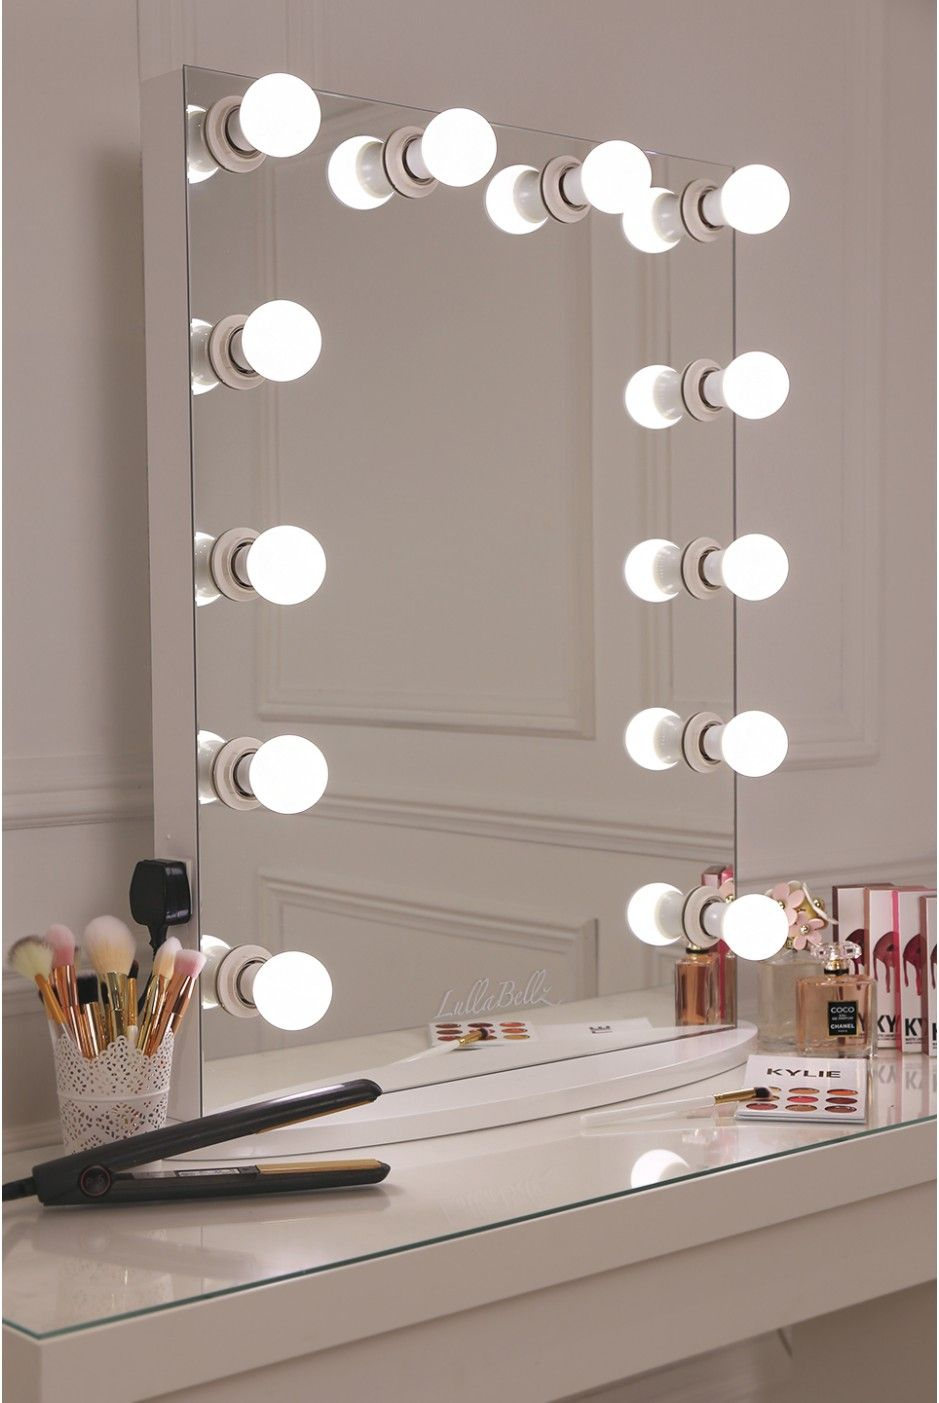 Dressing table mirrors with lights lullabellz hollywood glow vanity mirror led bulbs this is what make